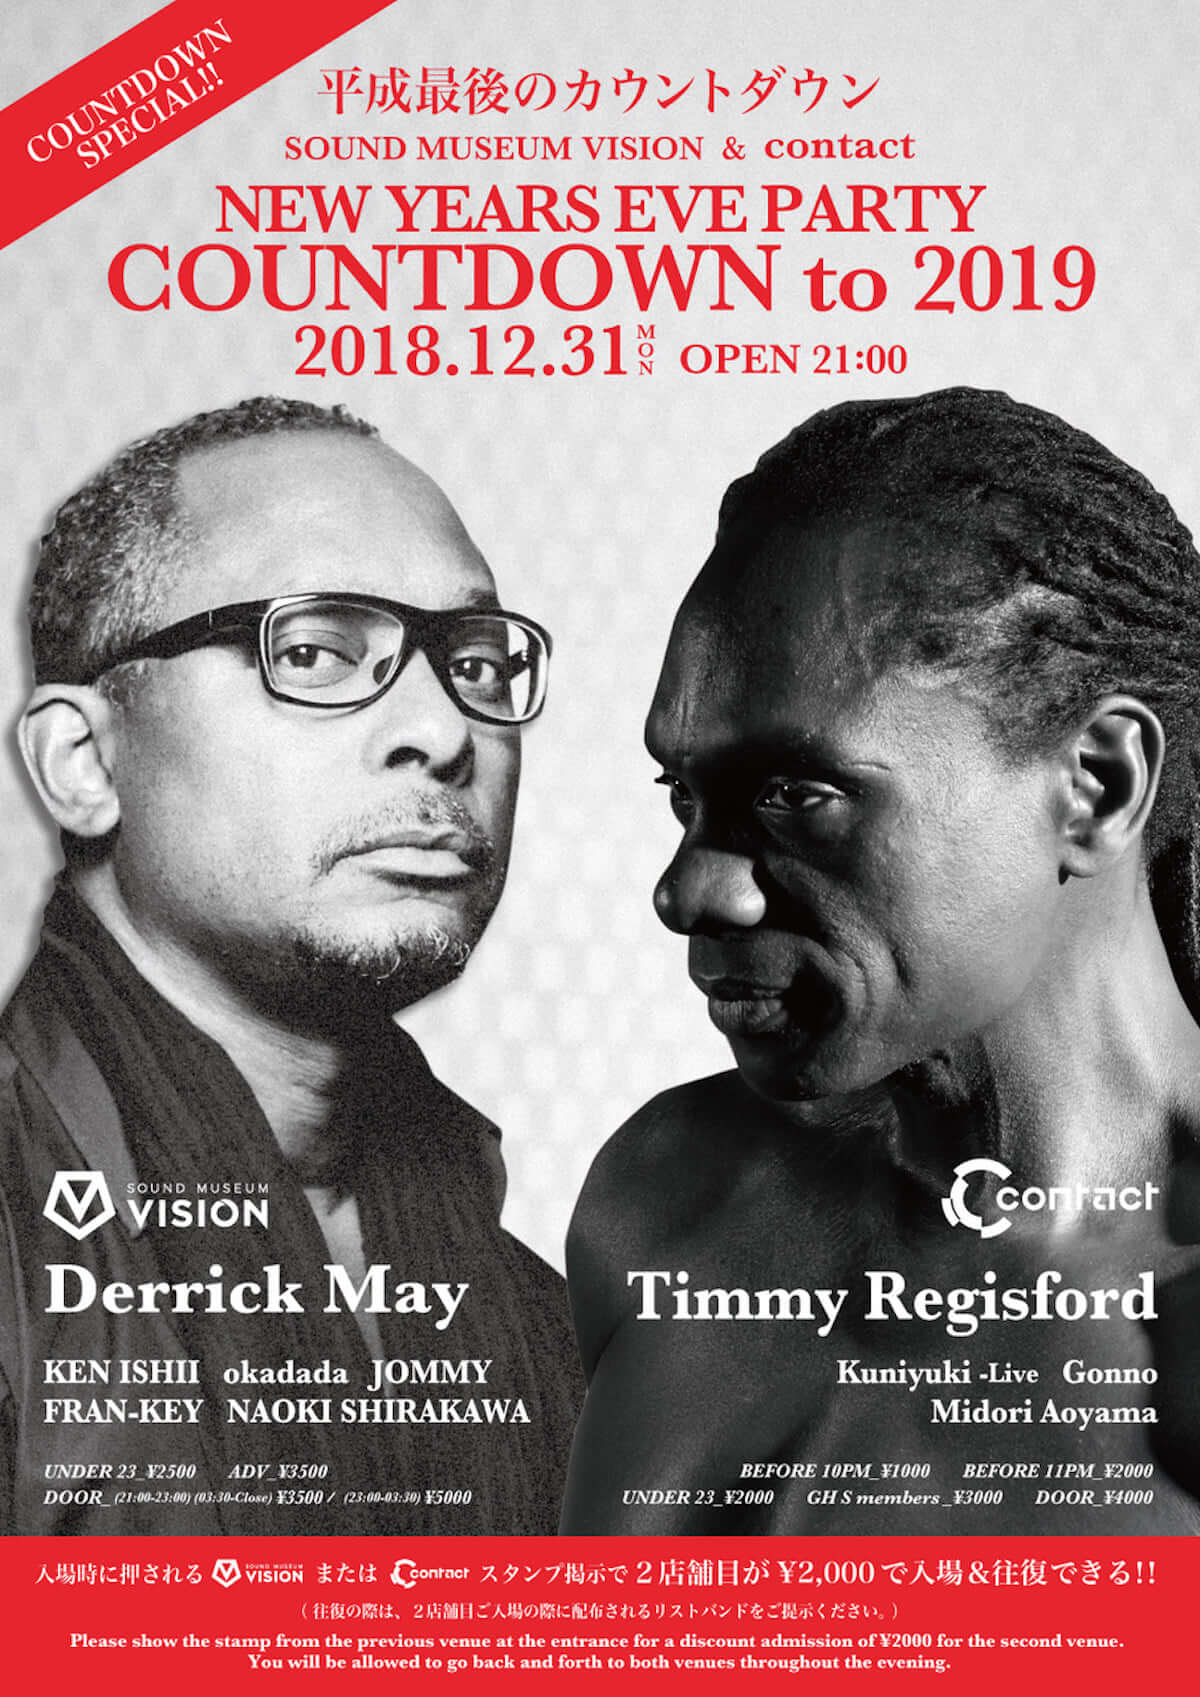 Derrick MayがVISIONに帰還!NEW YEARS EVE PARTY COUNTDOWN to 2019はチェック必須 music181227_VISION01-1200x1697